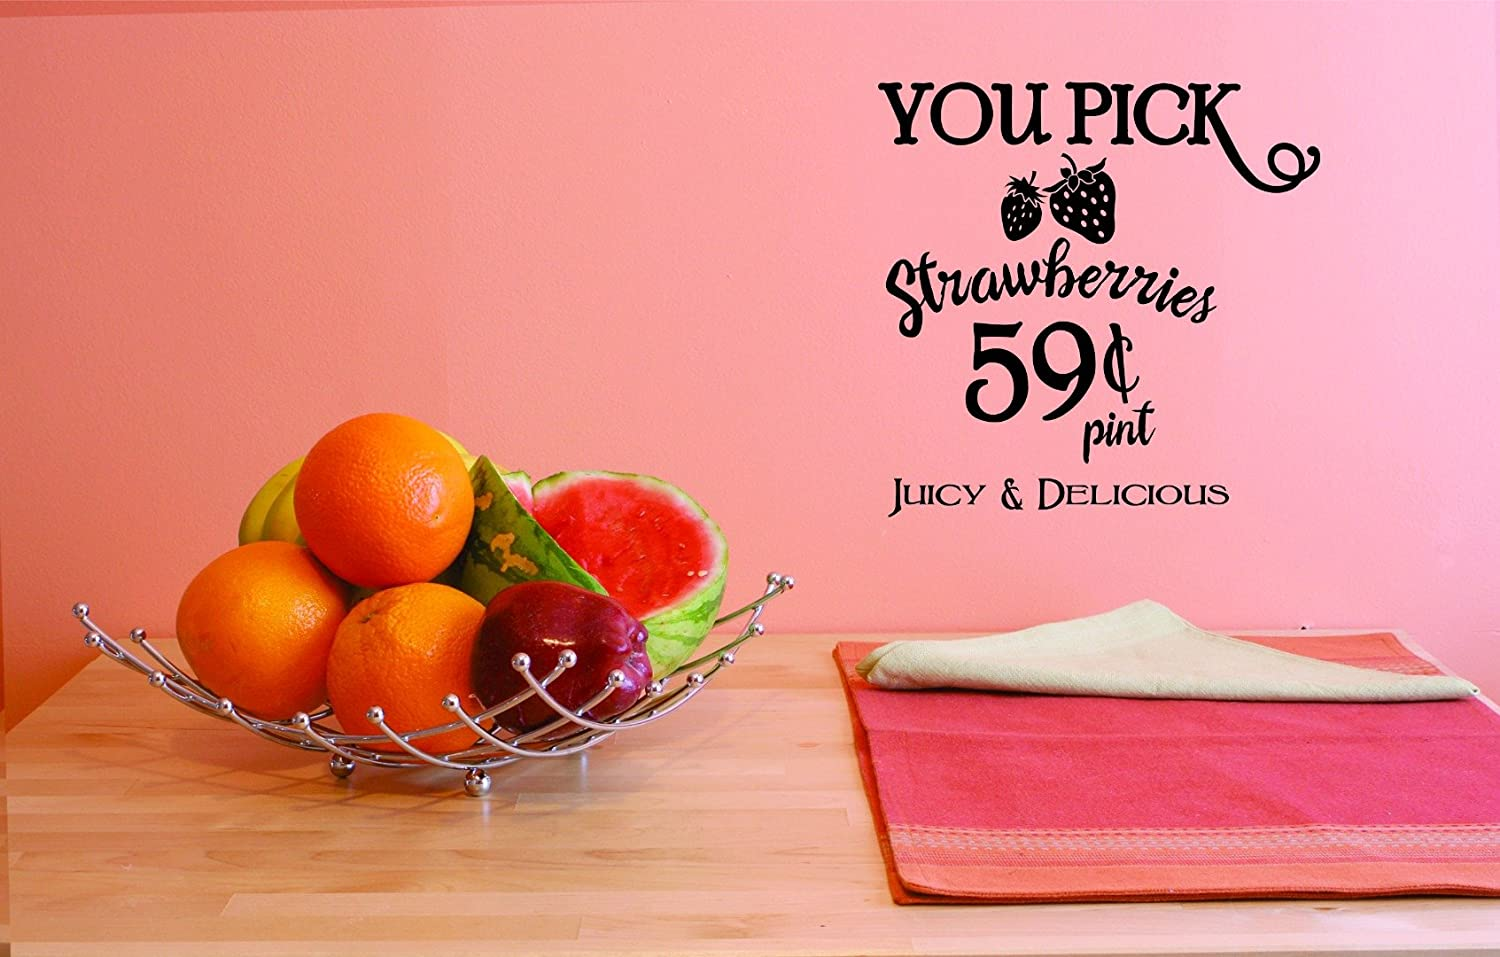 Design with Vinyl JER 1790 3 3 Hot New Decals You Pick Strawberries 59 Cents Pint Juicy and Delicious Wall Art Size 20 Inches x 30 Inches Color 20 x 30 Black